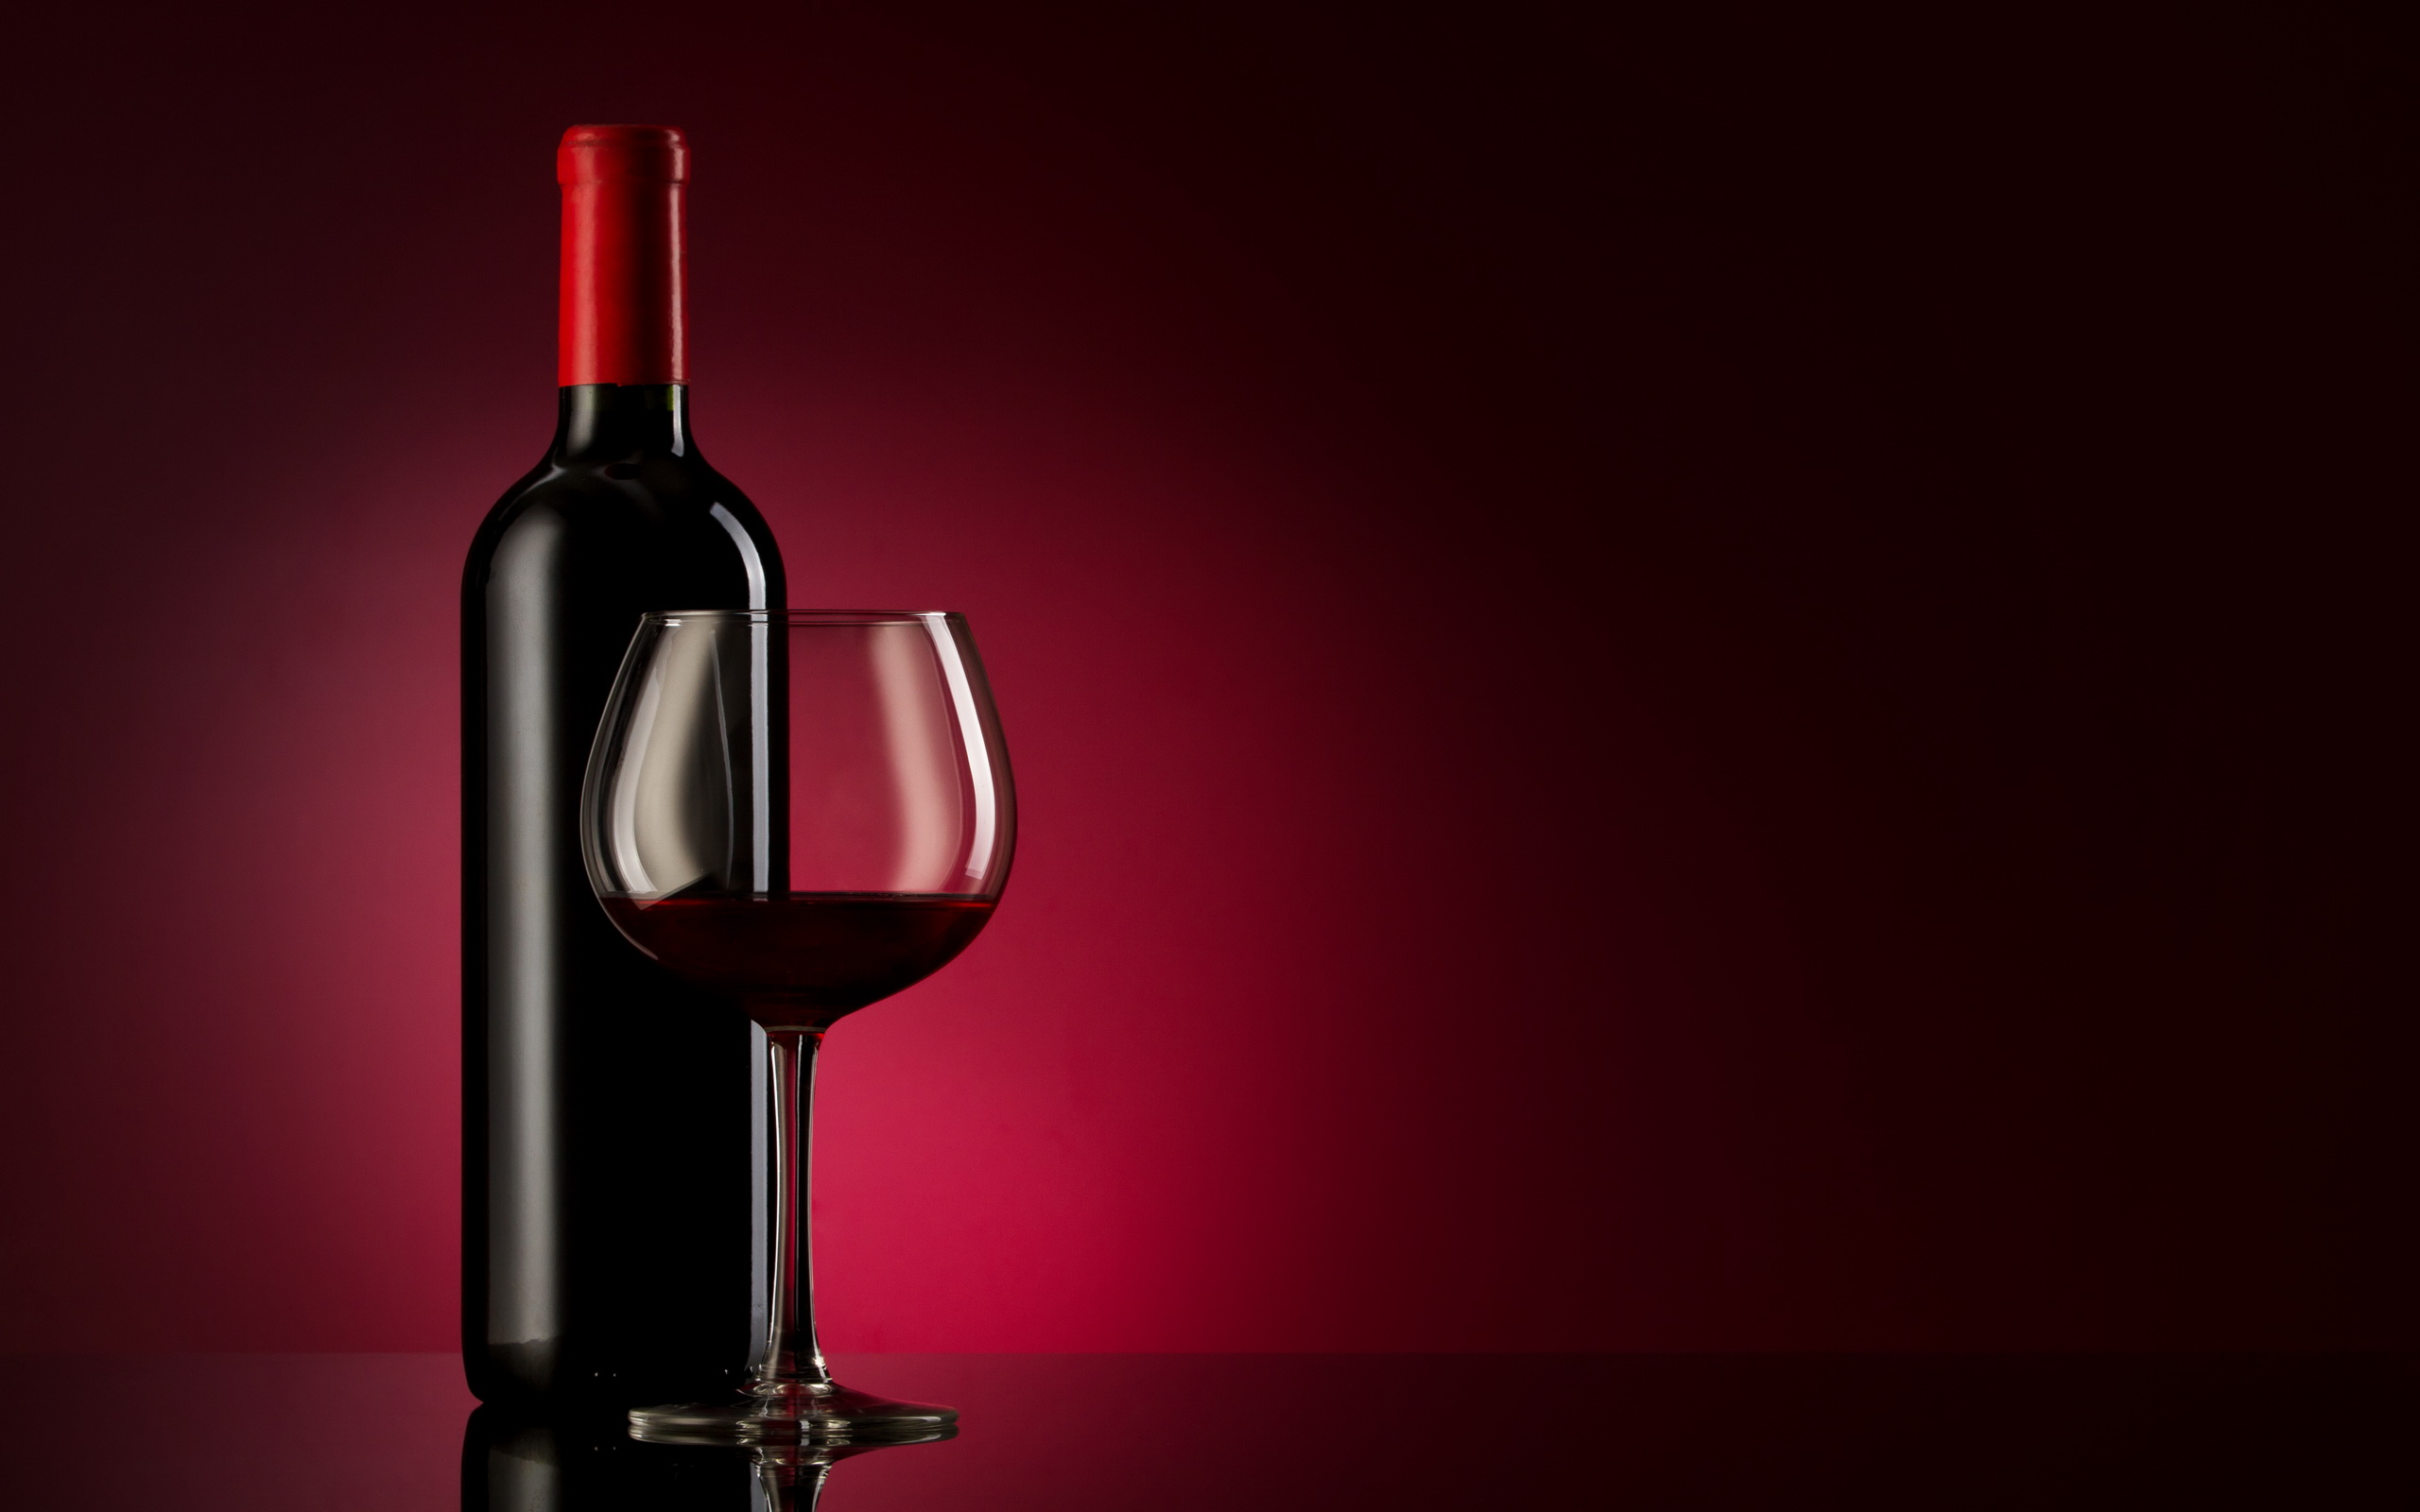 Red Wine Widescreen Desktop Wallpaper 528 2560x1600 Px